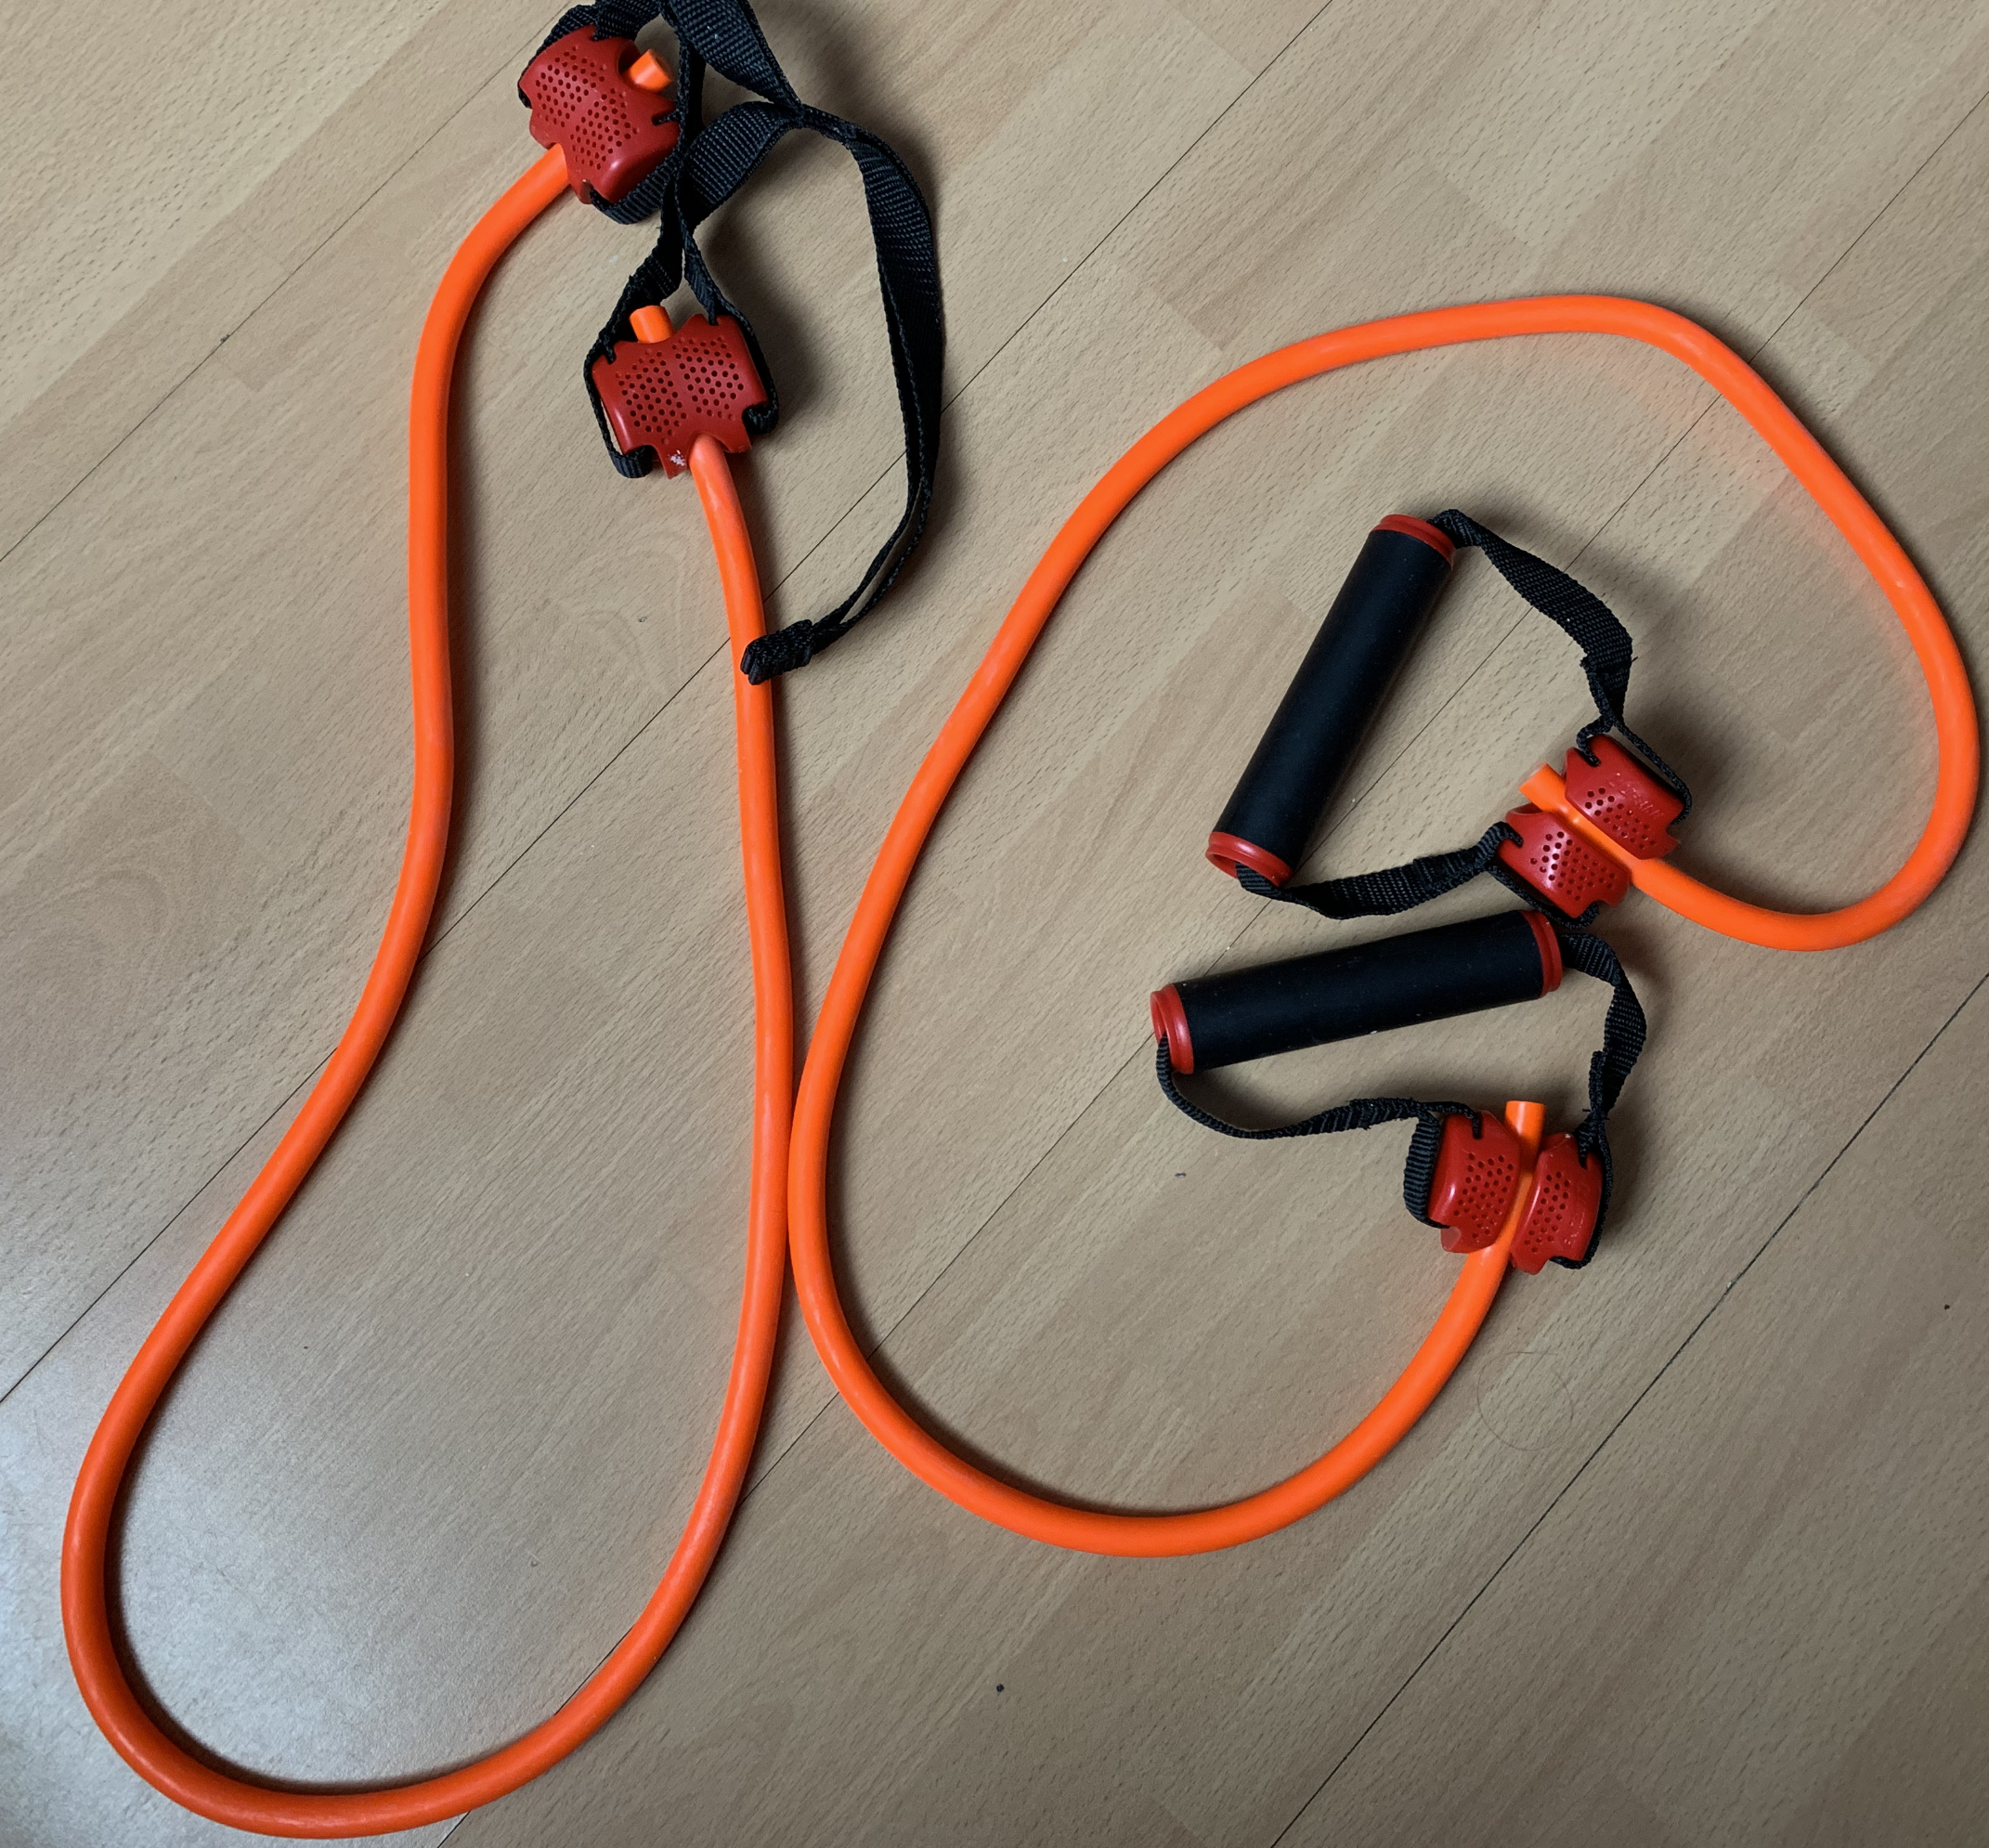 R10 Trainer Cable(čierny) - LIFELINE - 45kg